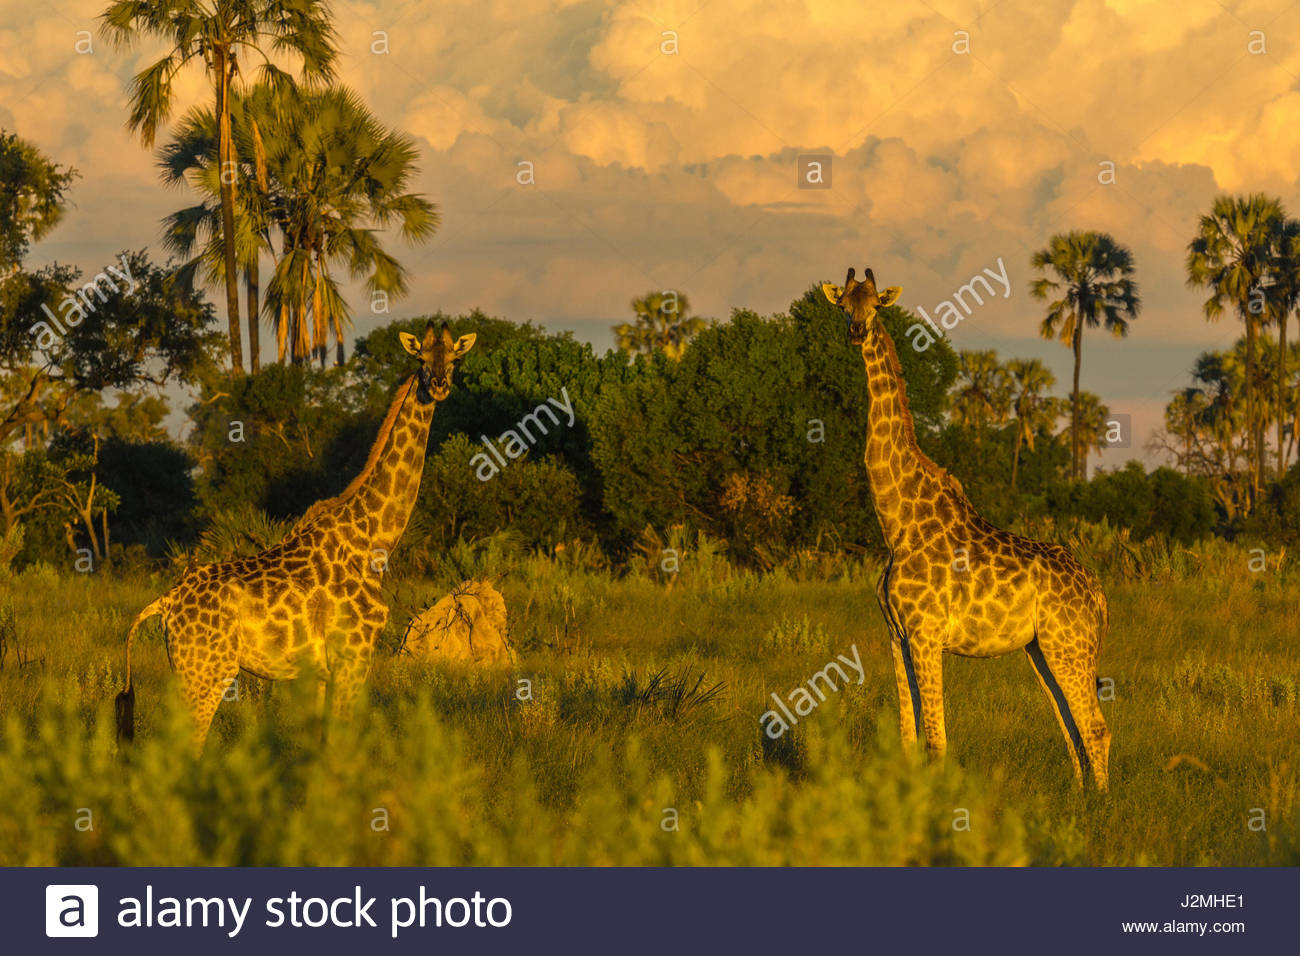 A pair of Giraffe in the evening sun as storm clouds gather behind them. - Stock Image